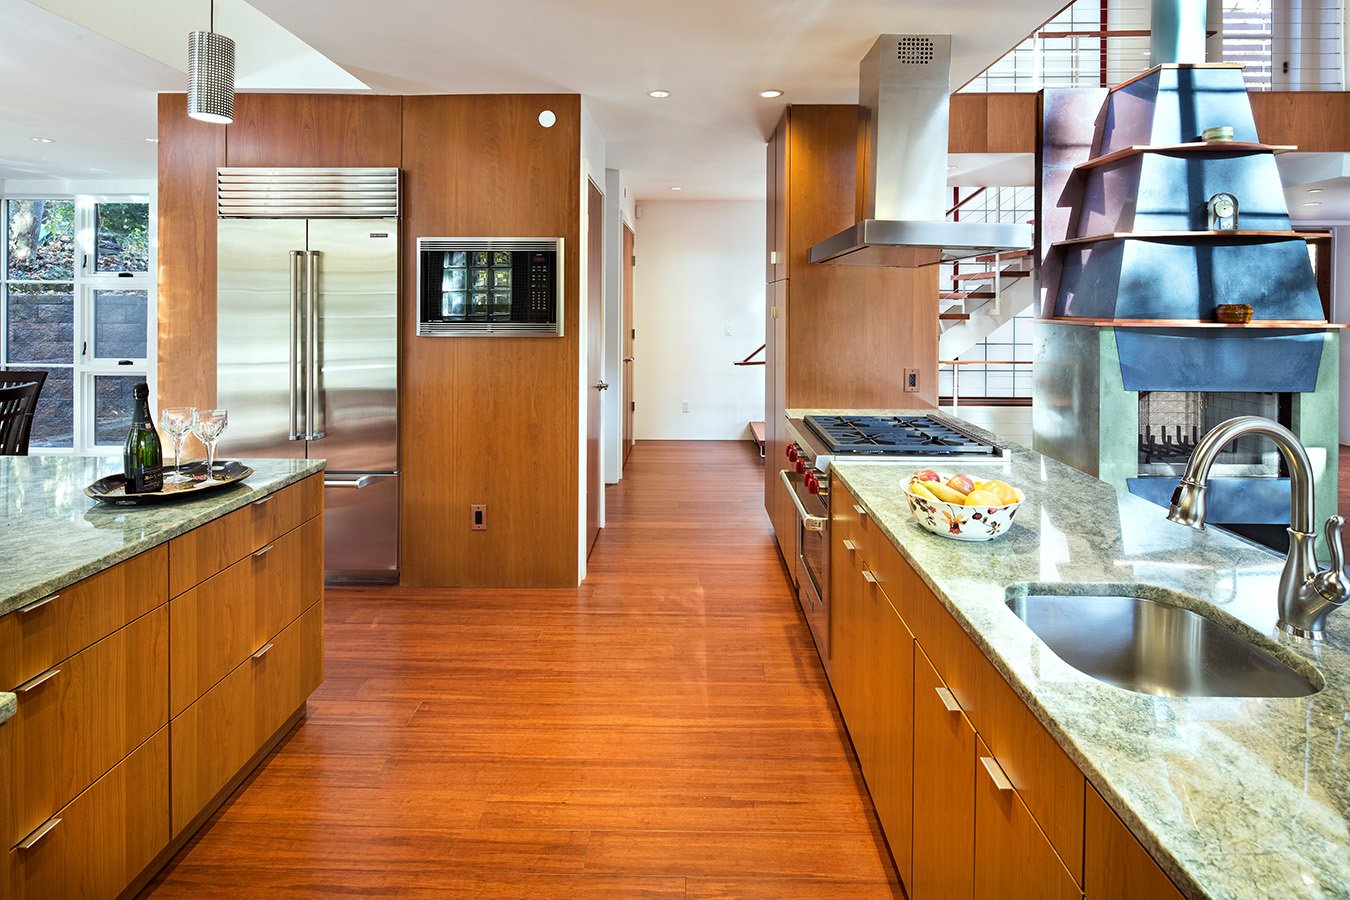 Kitchen, Refrigerator, Cooktops, Range, Range Hood, Microwave, Dishwasher, Granite, Wood, Medium Hardwood, Mosaic Tile, Ceiling, Pendant, Undermount, and Concrete Kitchen  Best Kitchen Microwave Range Hood Wood Pendant Mosaic Tile Undermount Photos from Home for Sale: Takoma Park House